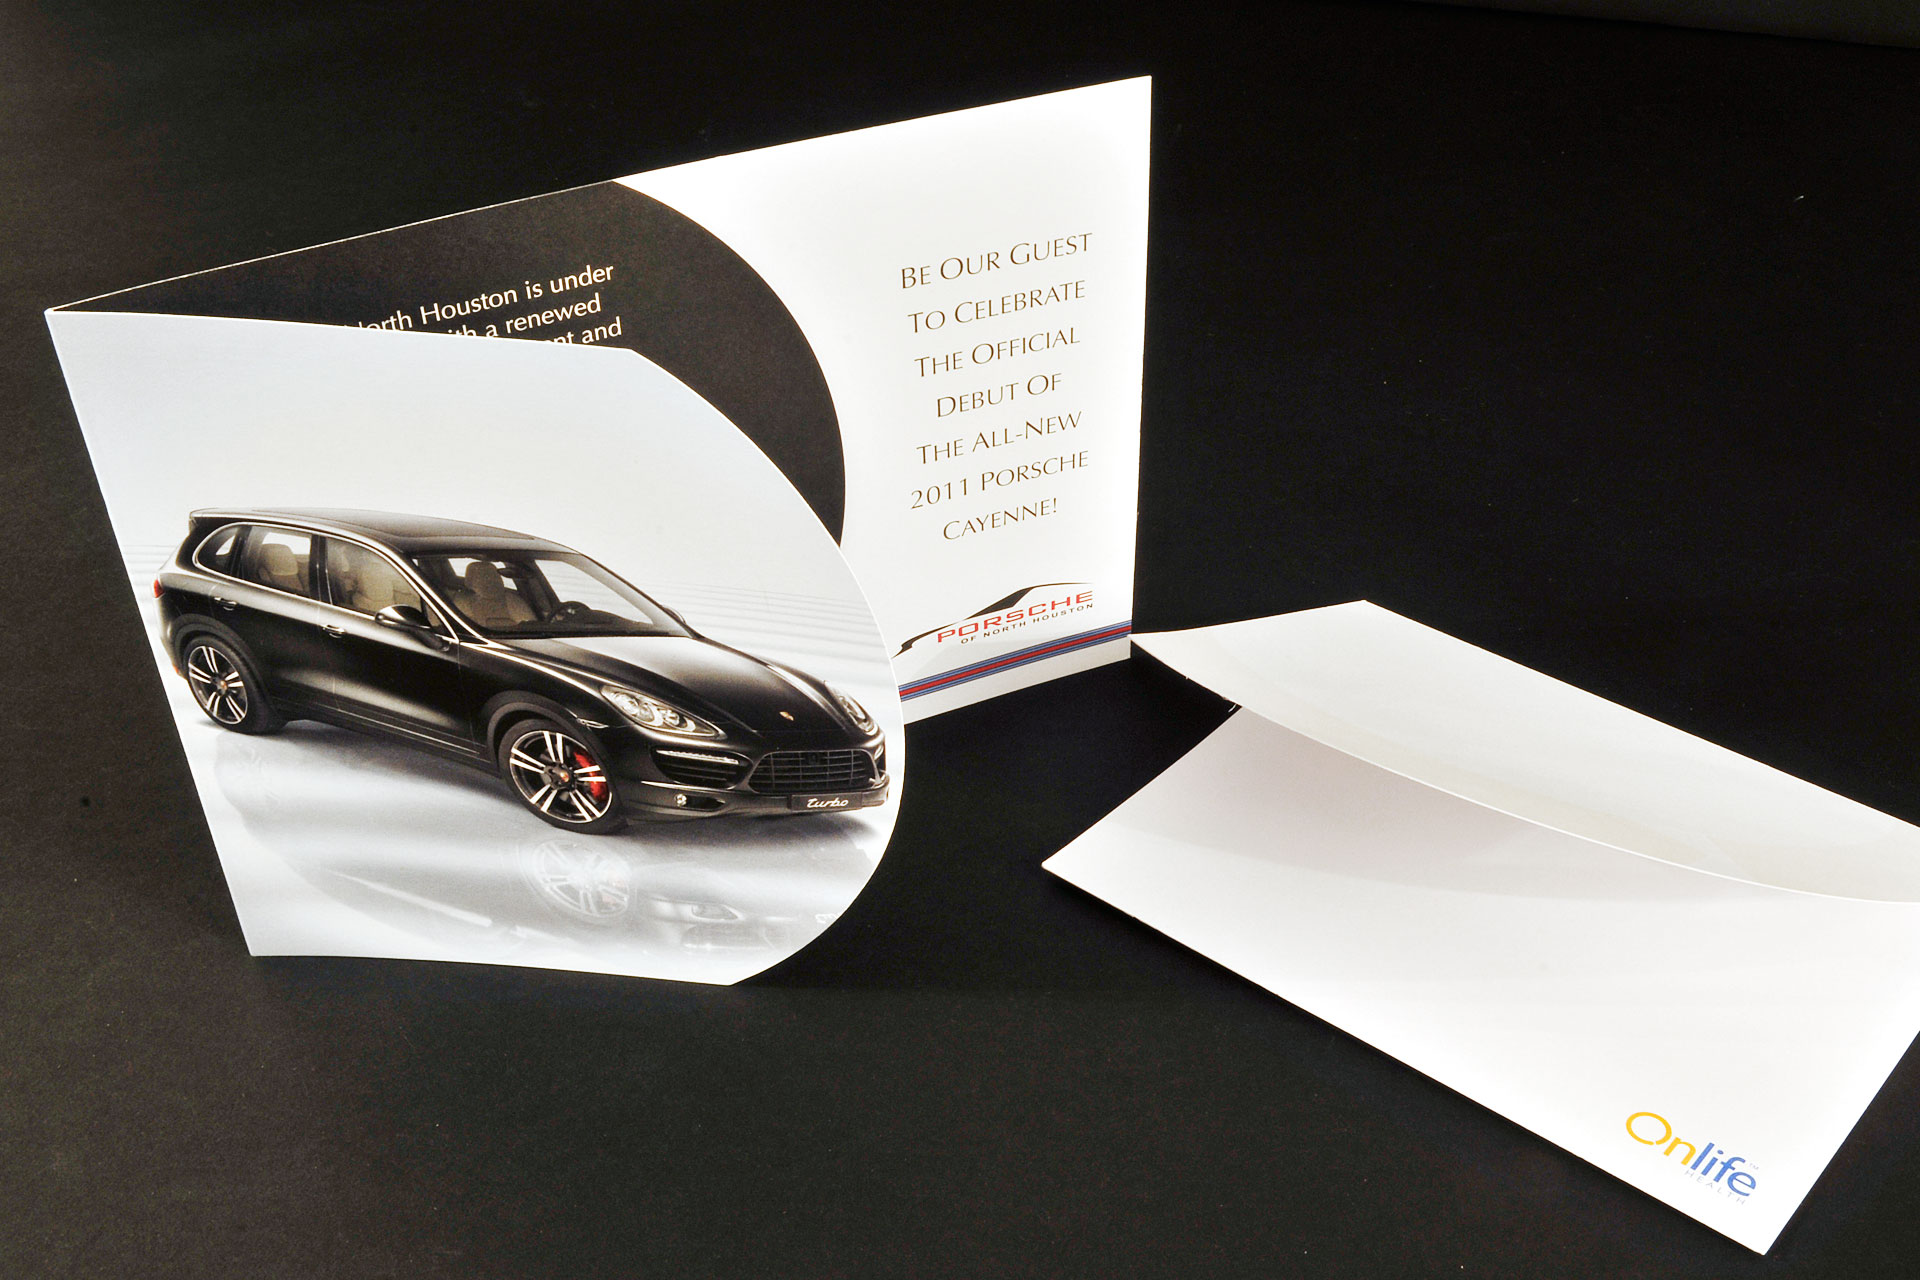 CMYK Automotive Sales Event Invitation